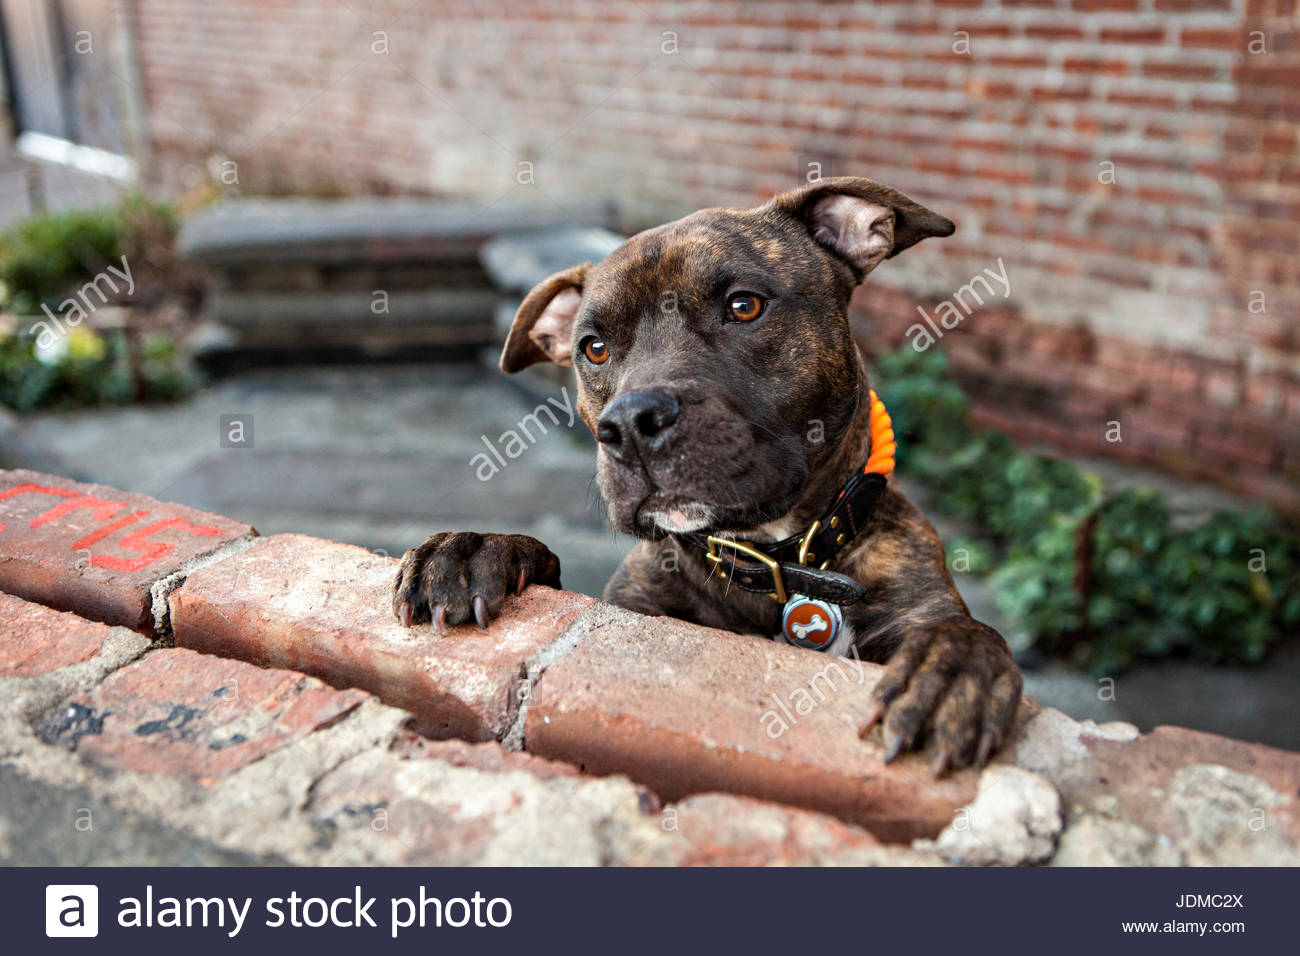 An American Staffordshire Terrier, or pit bull, begs for treats. - Stock Image